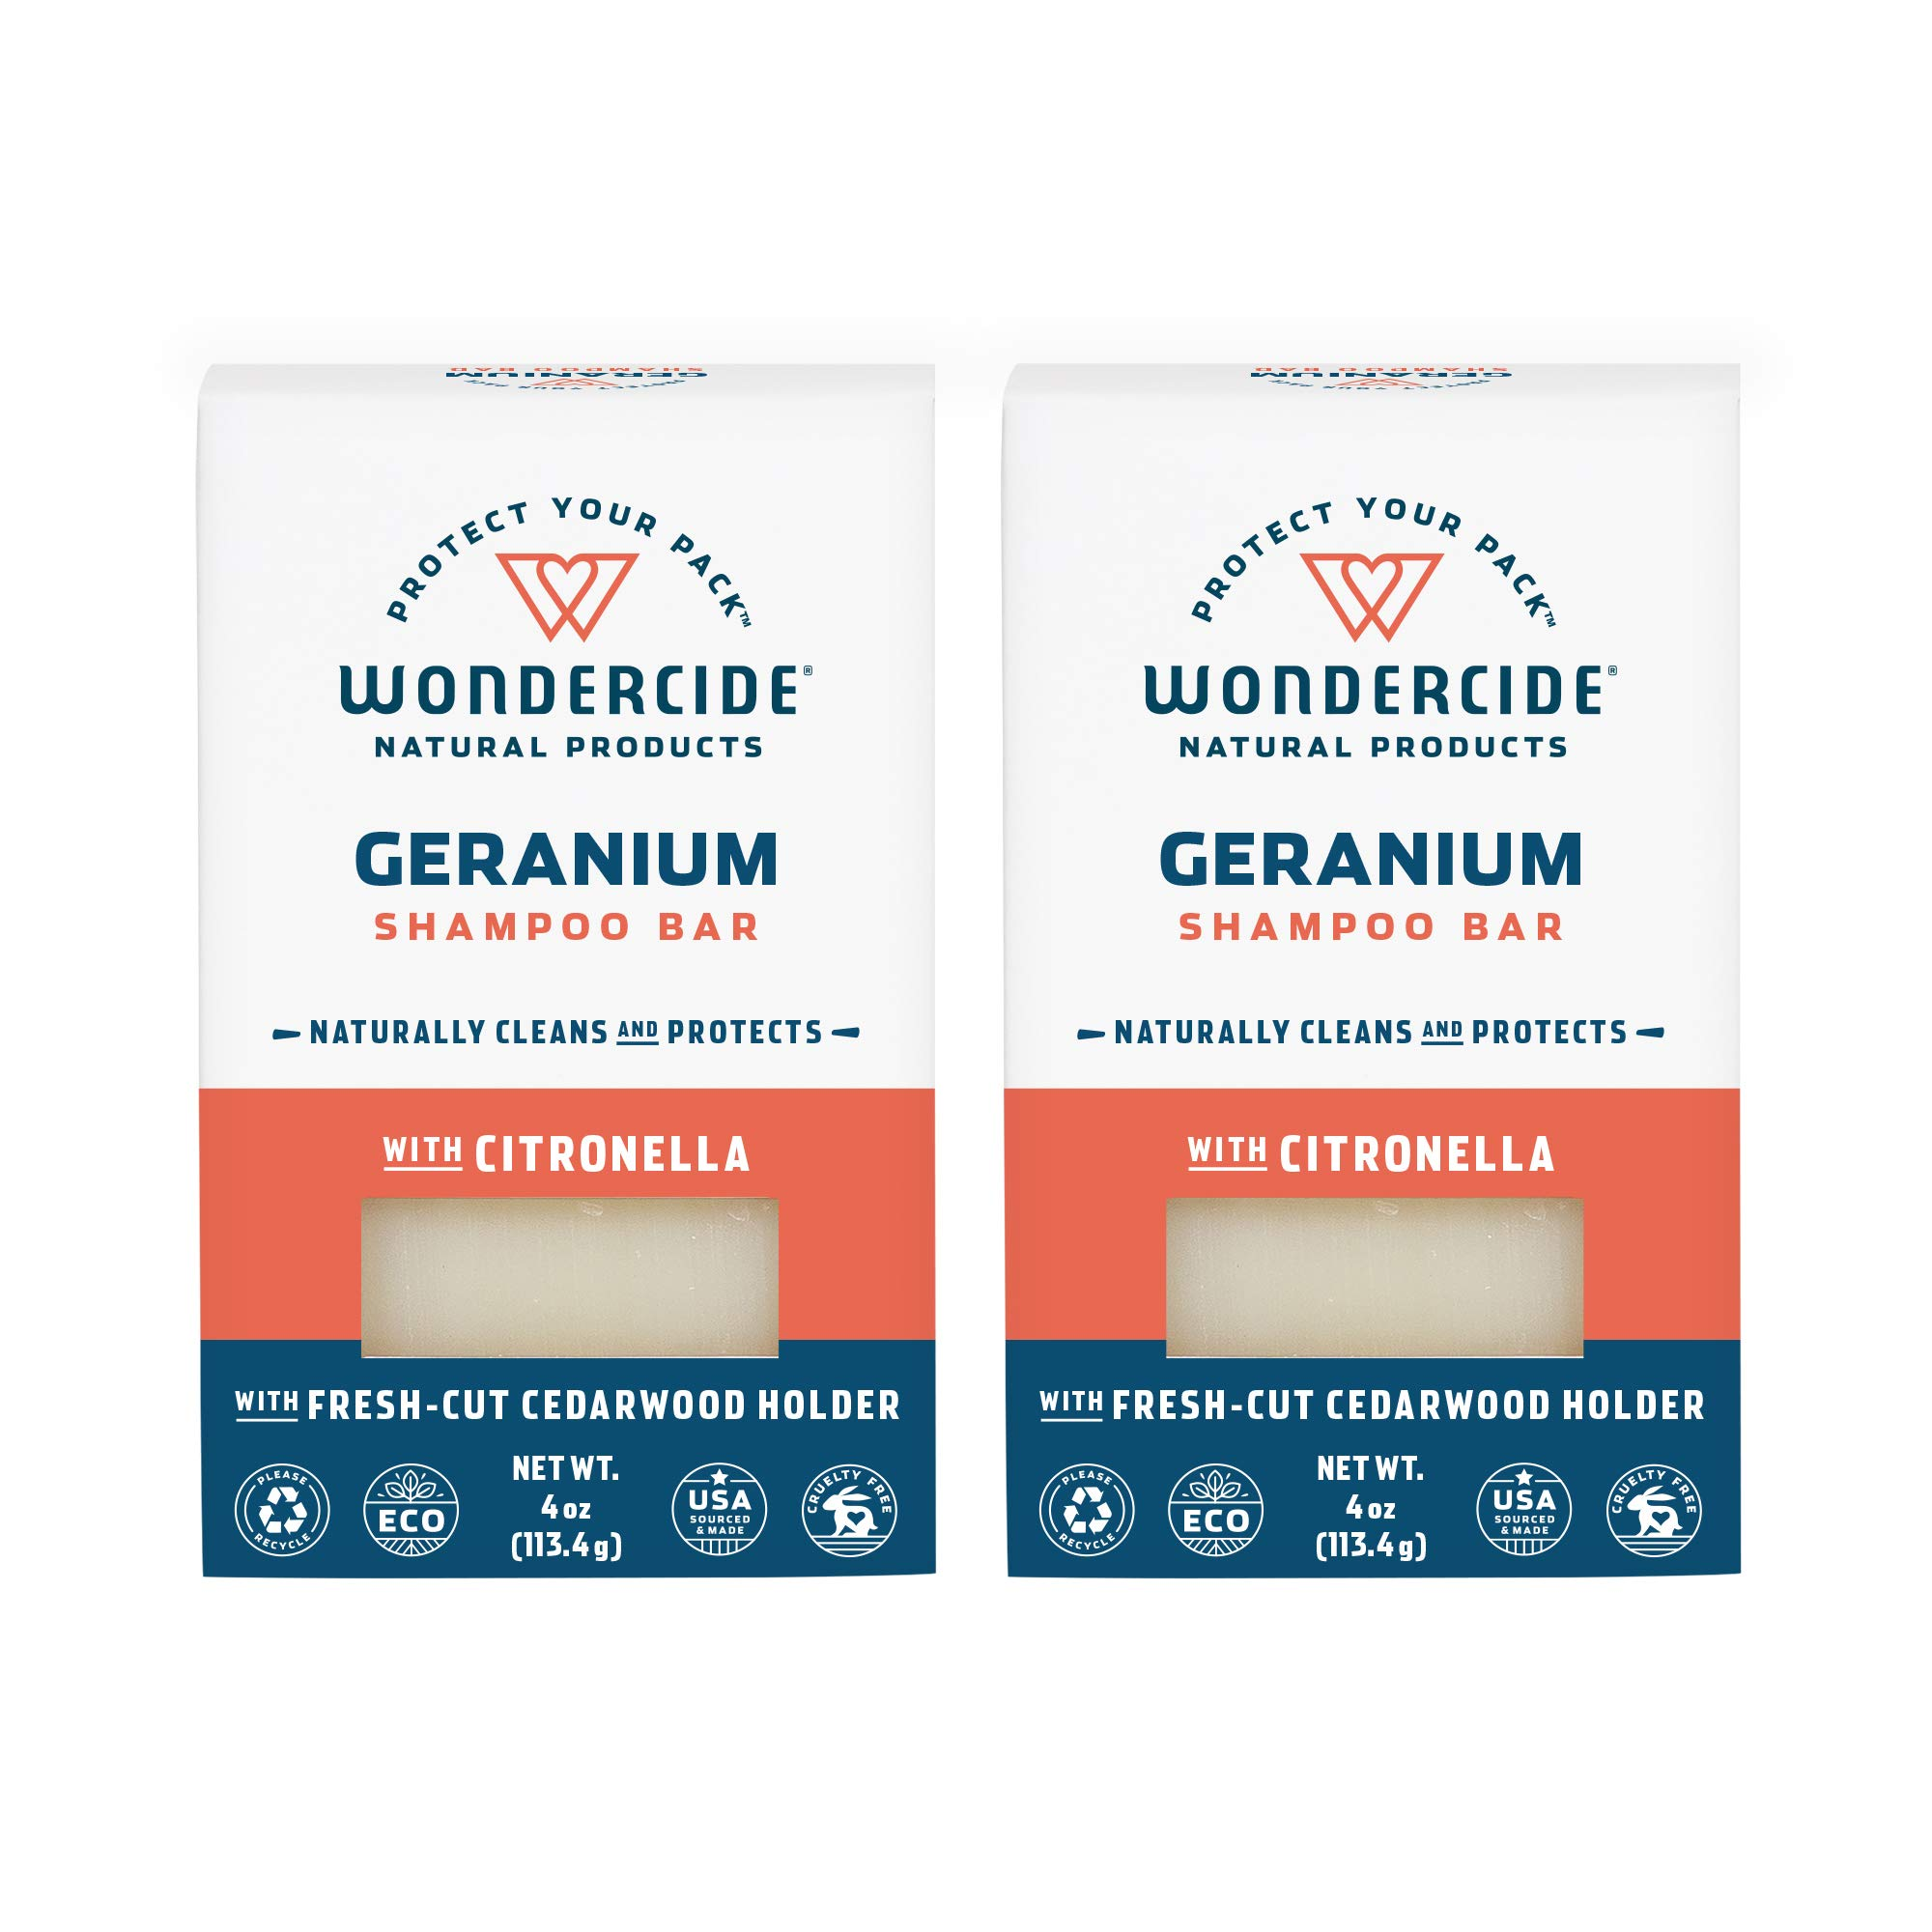 Wondercide Natural Flea & Tick Geranium Shampoo Bar for Dogs & Cats to Kill & Repel Fleas 4oz Bar - 2 Pack